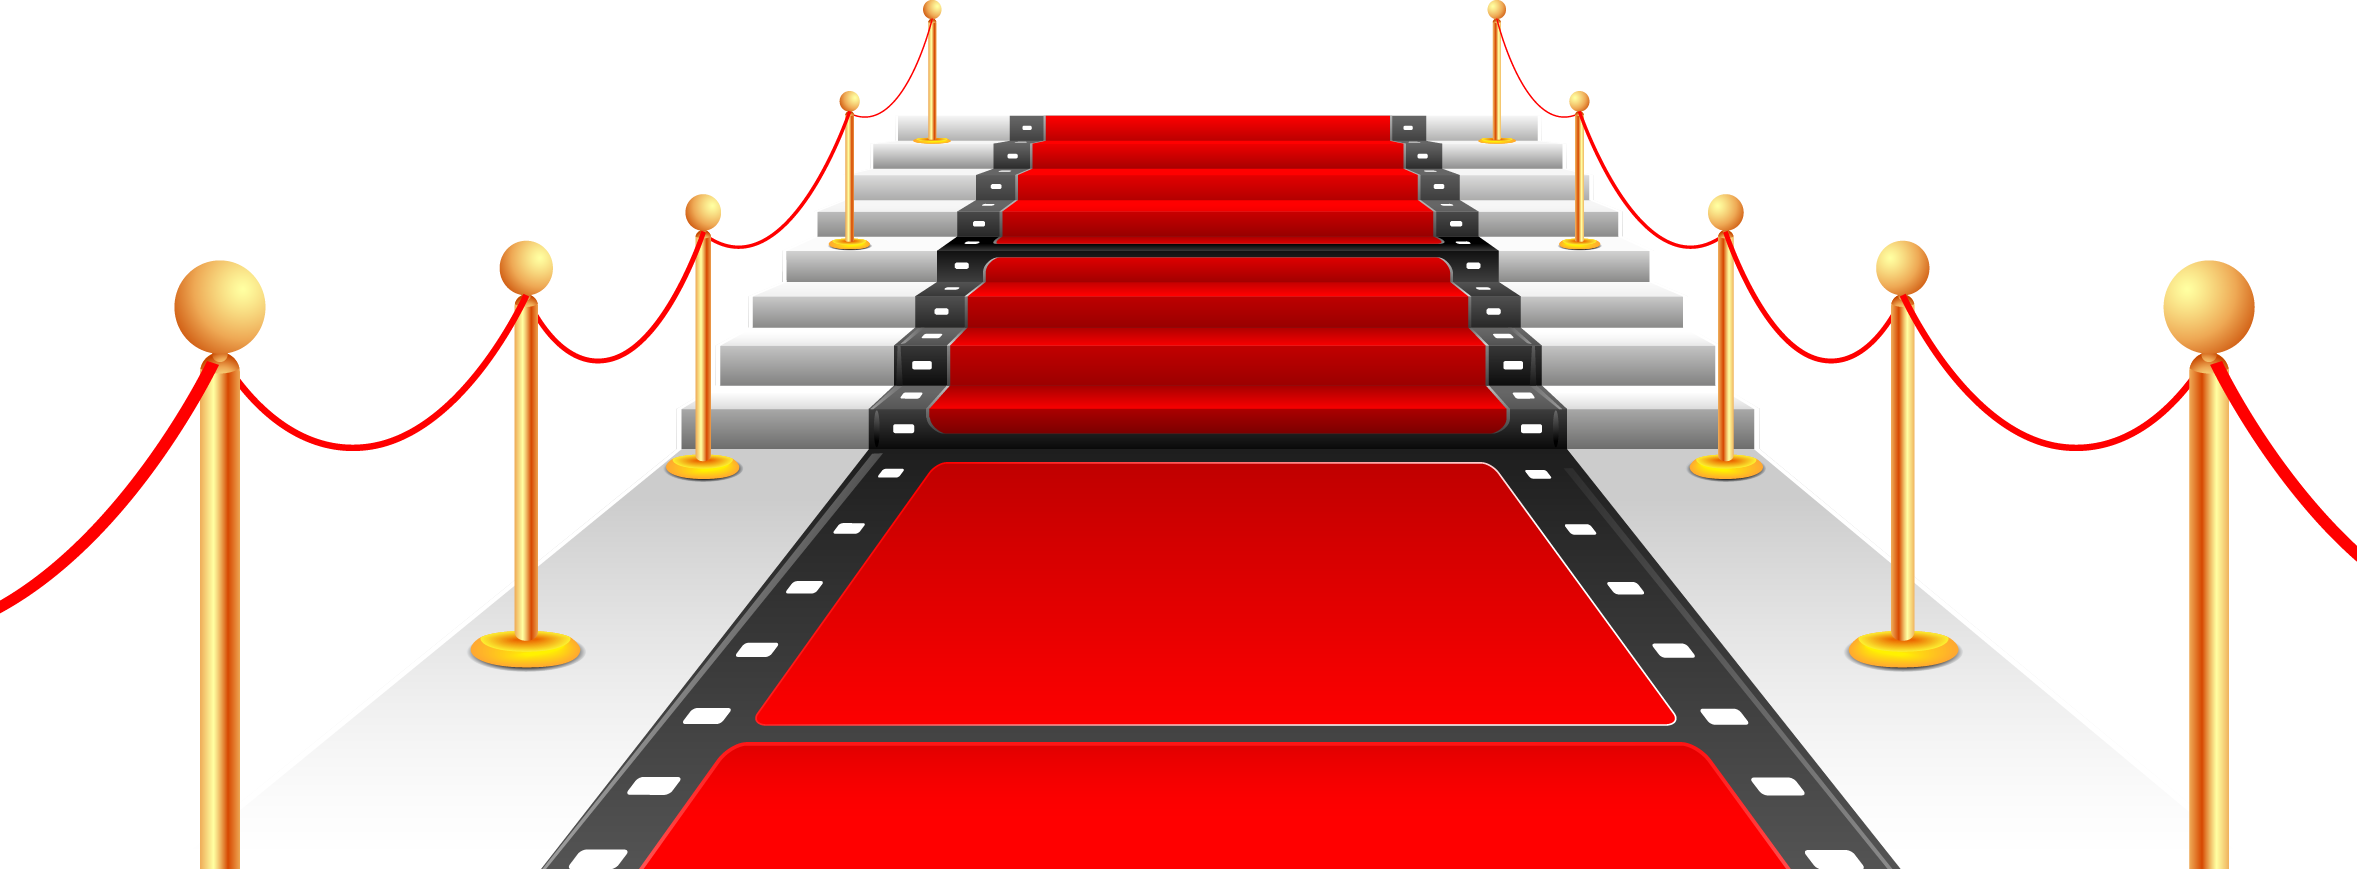 Red carpet png. Images free download